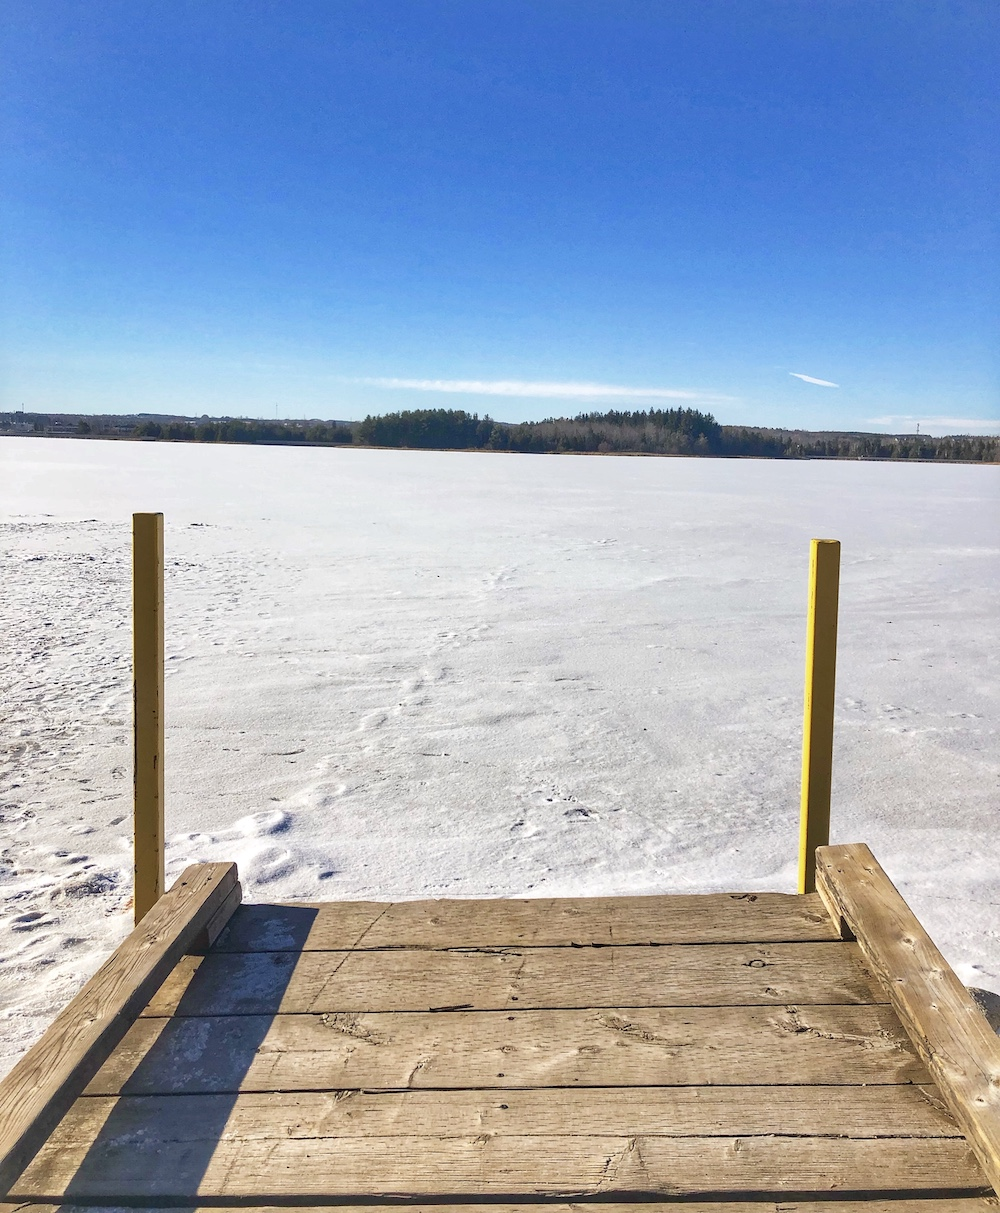 Island Lake Conservation Area - Winter